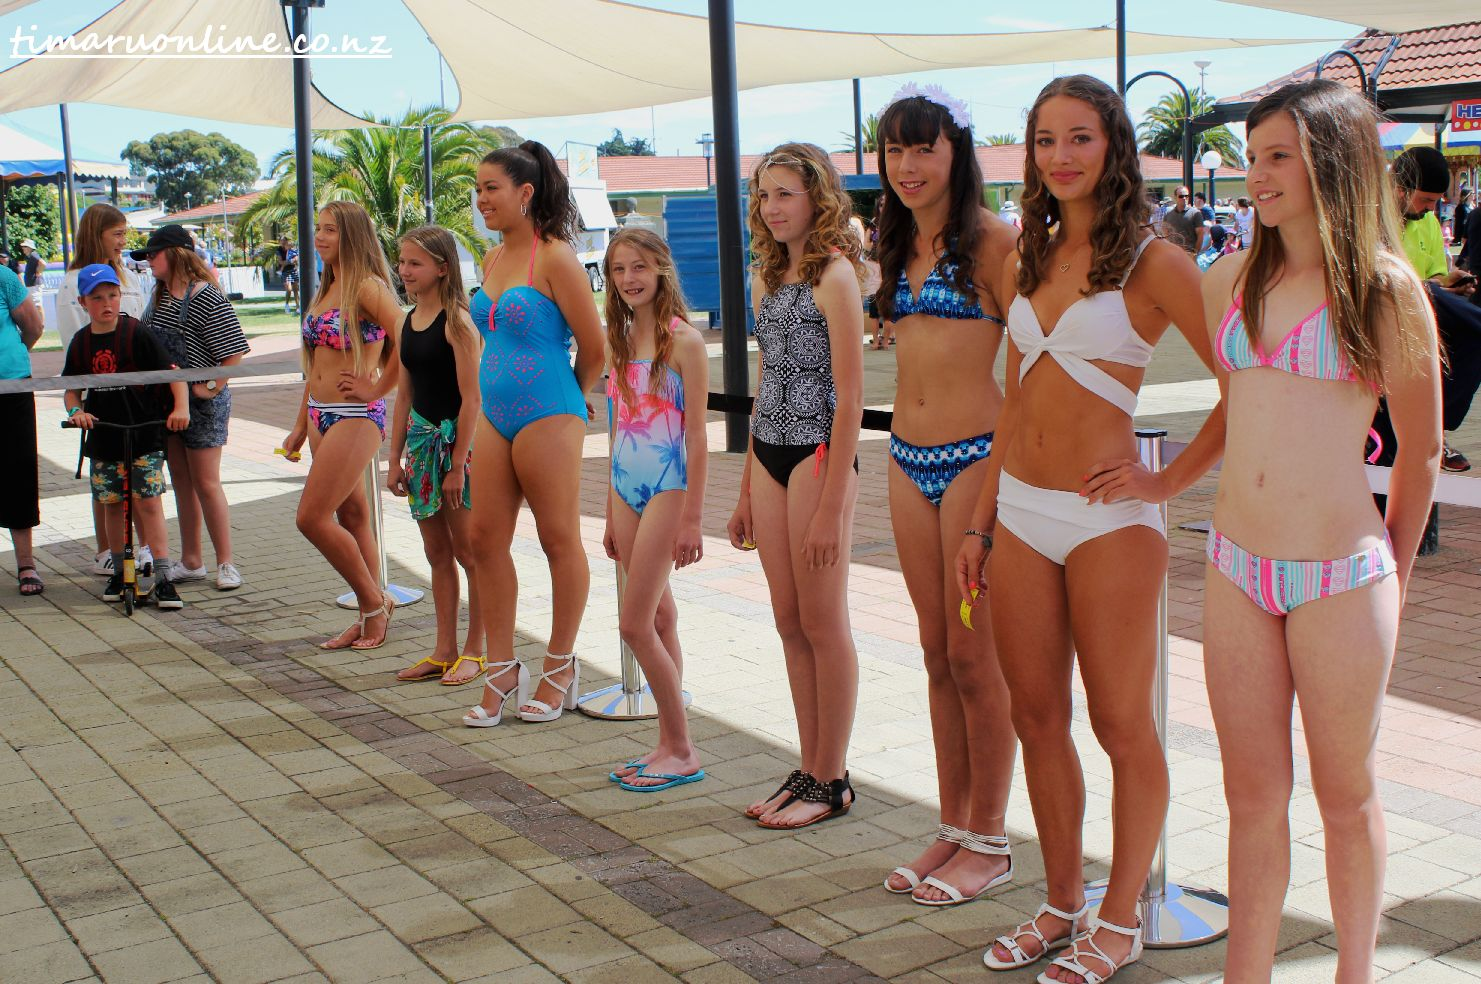 Junior bikini contest